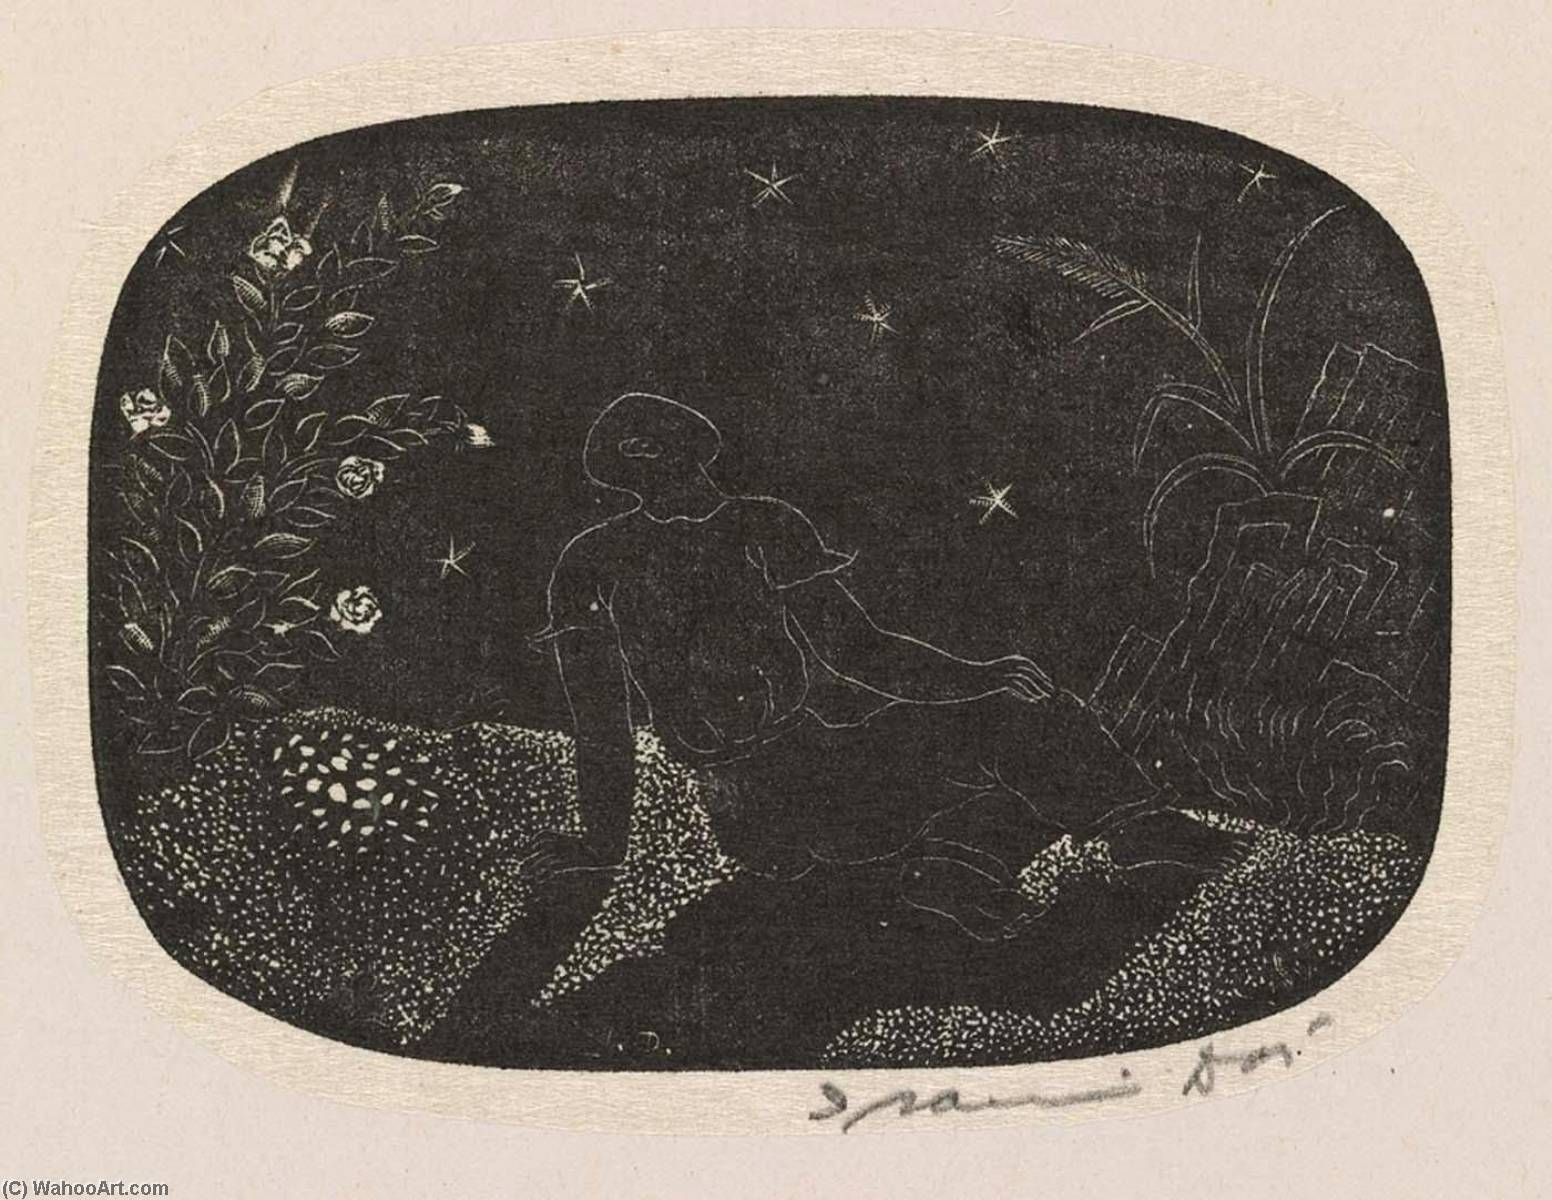 (The Wayward Muse, portfolio) Here Beneath the Canopy of Stars I Shall Sleep a Thousand Years of Dreamless Nights, 1952 by Isami Doi | Museum Quality Reproductions | WahooArt.com